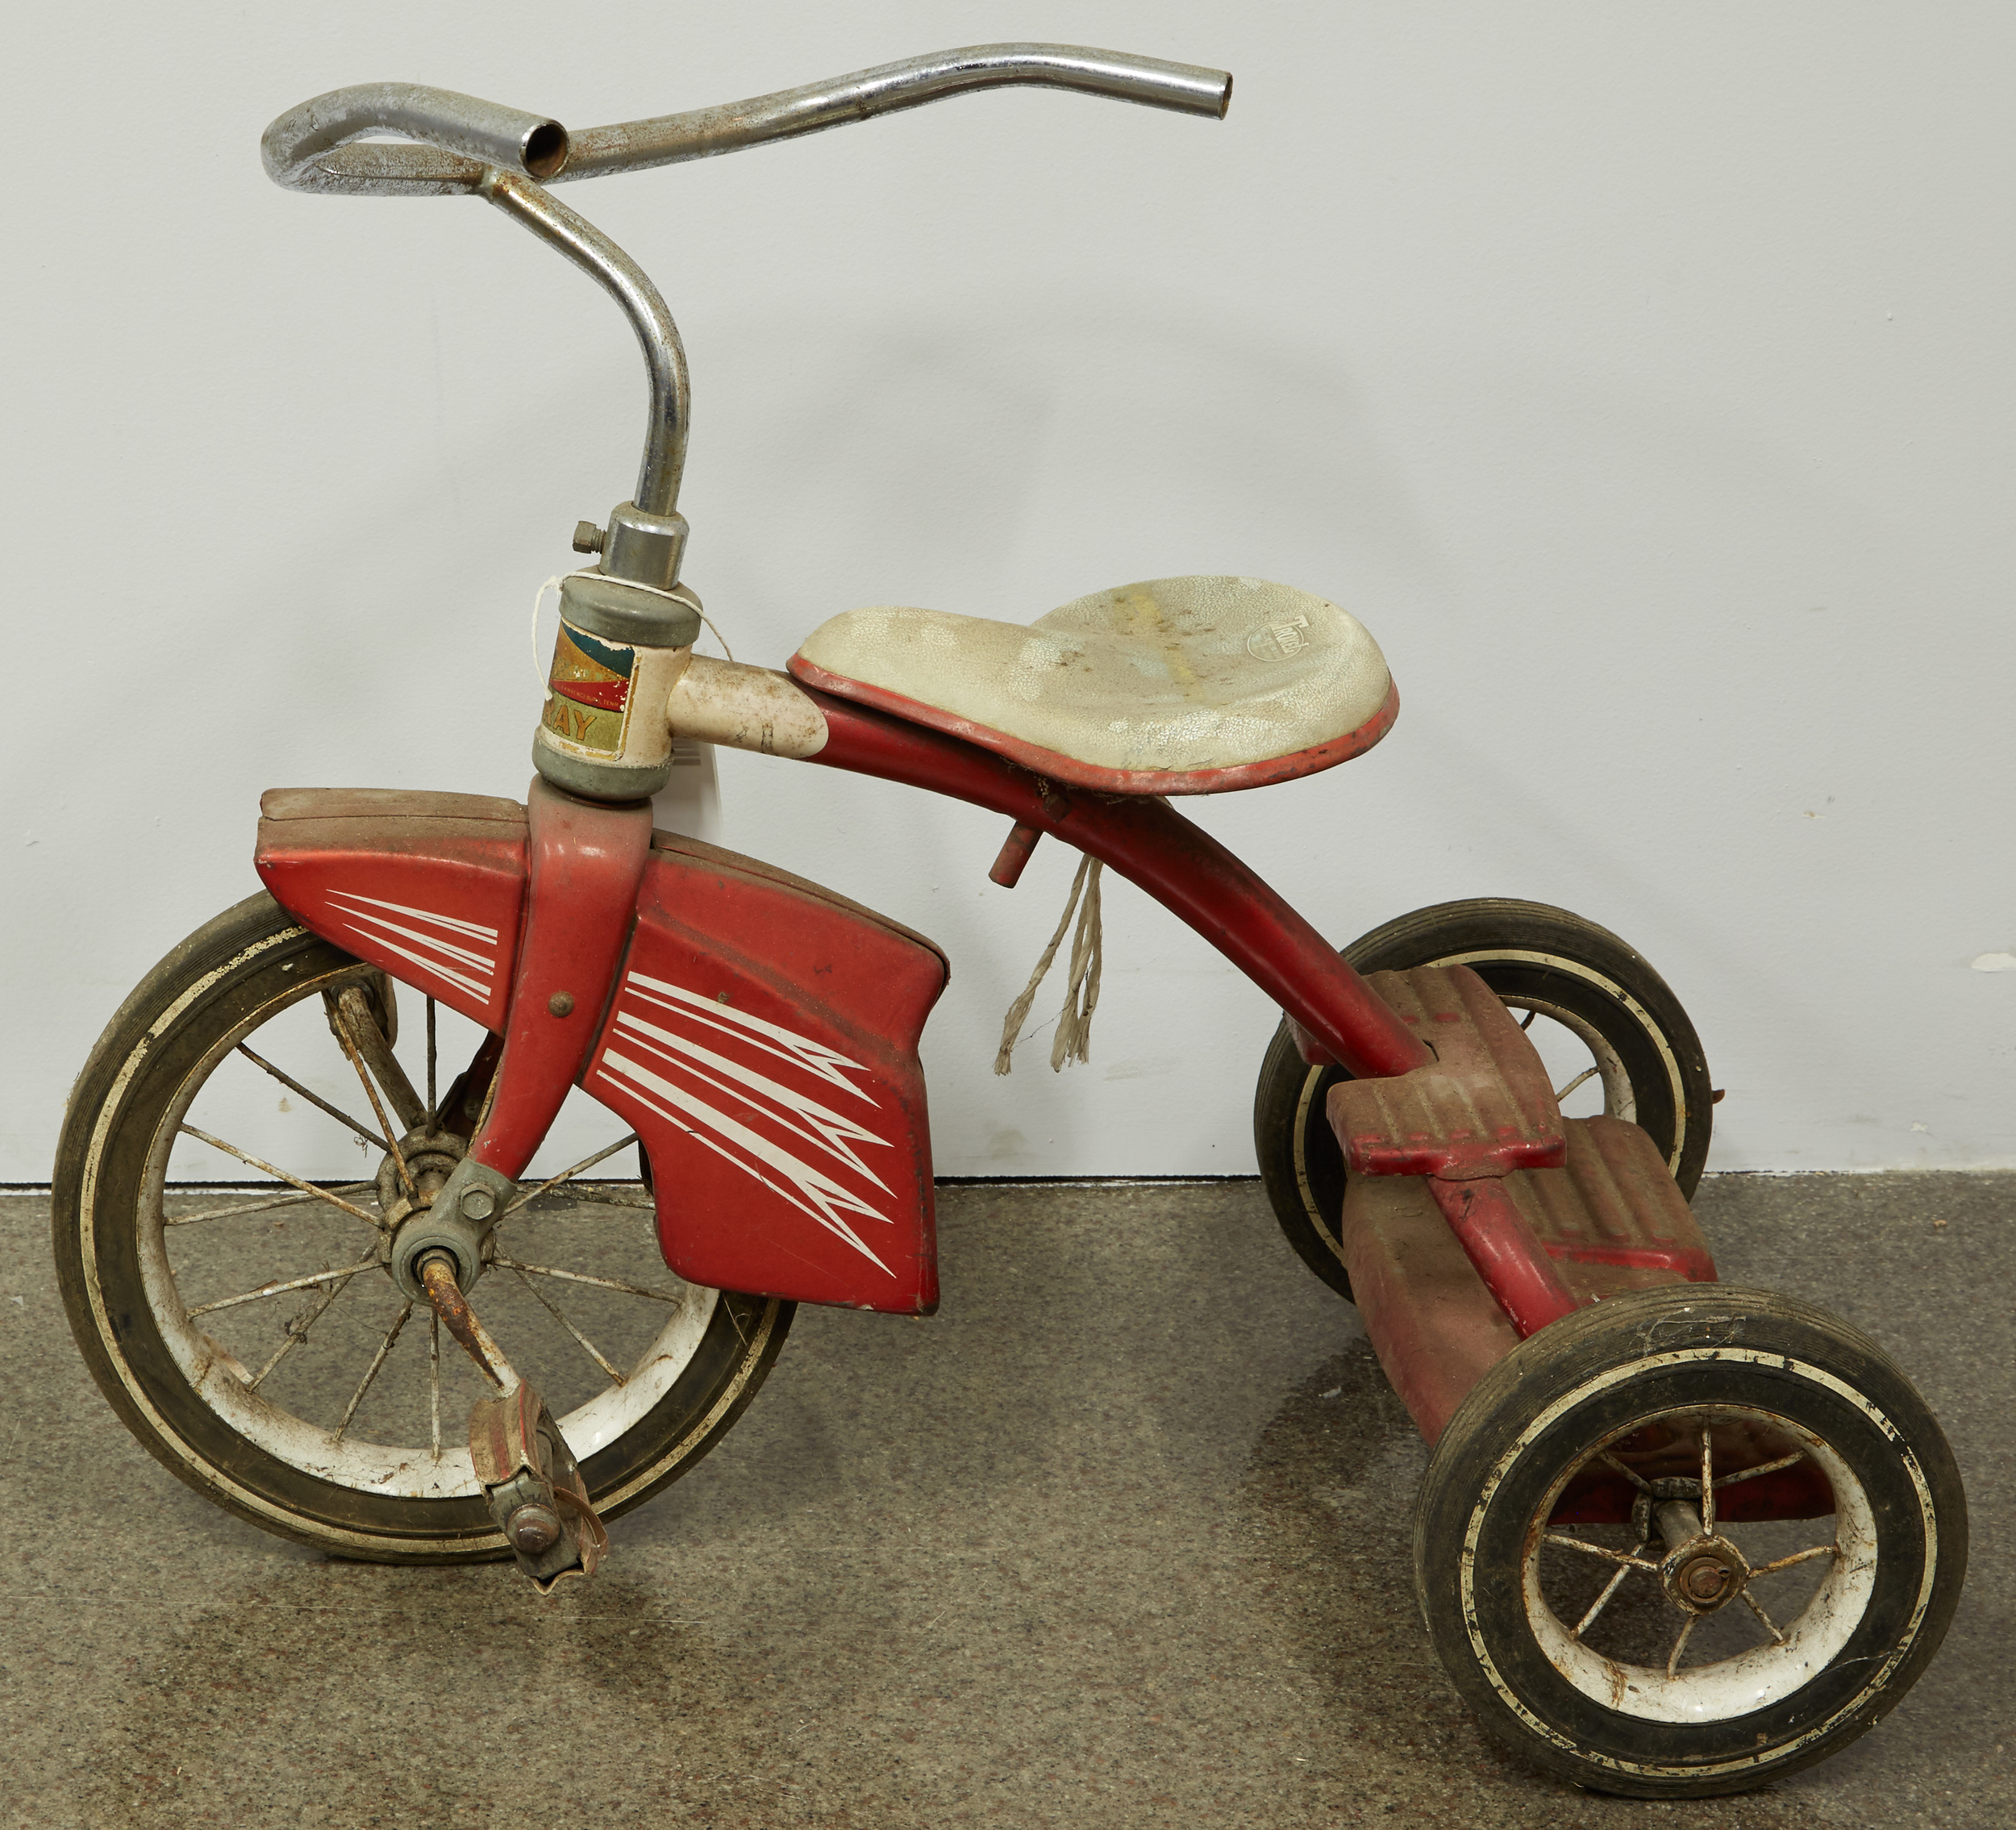 50 years of grime and corrosion are evident in this pre-treatment photo of the Murray tricycle.